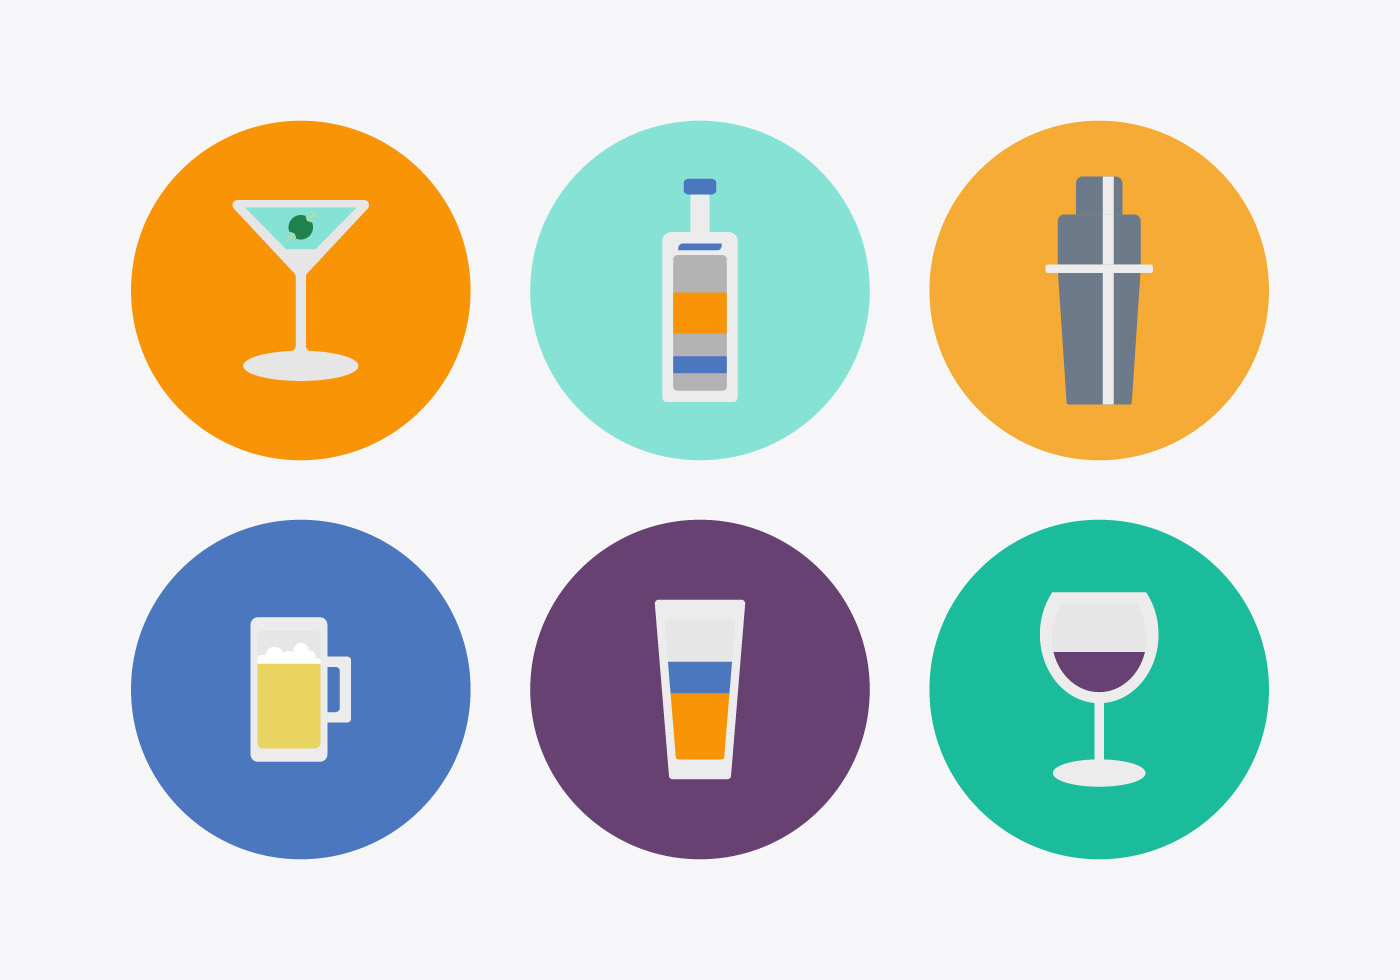 Free Download Png And Vector: Free Cocktail Vector Icons